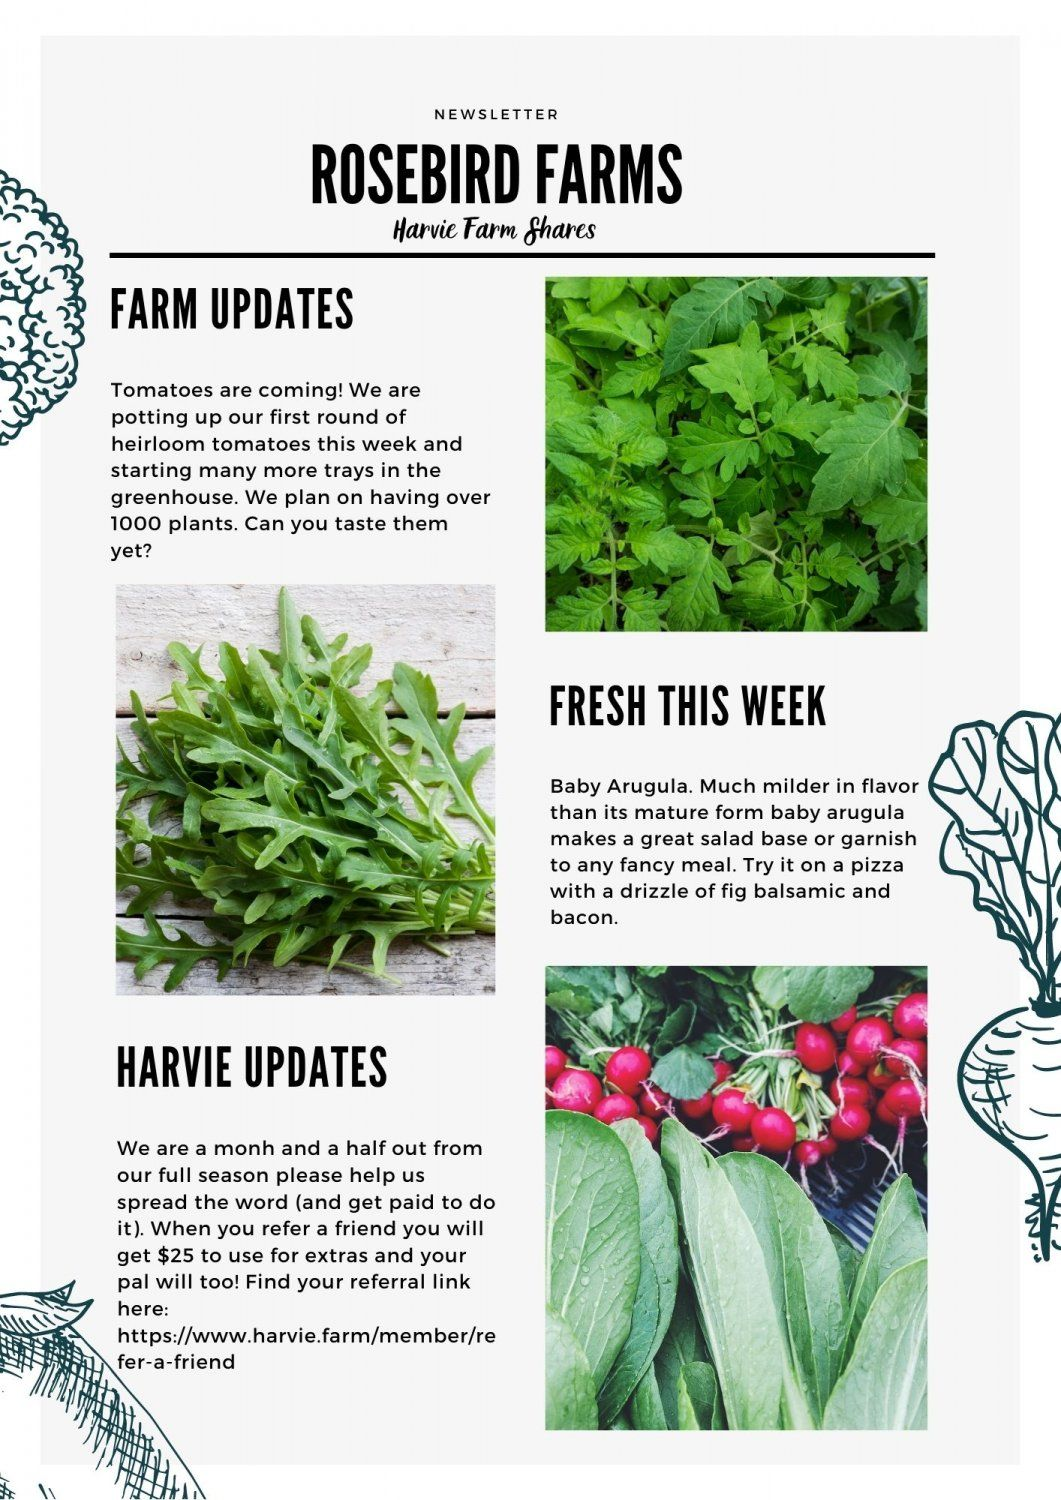 Previous Happening: Farm Happenings for February 18, 2021